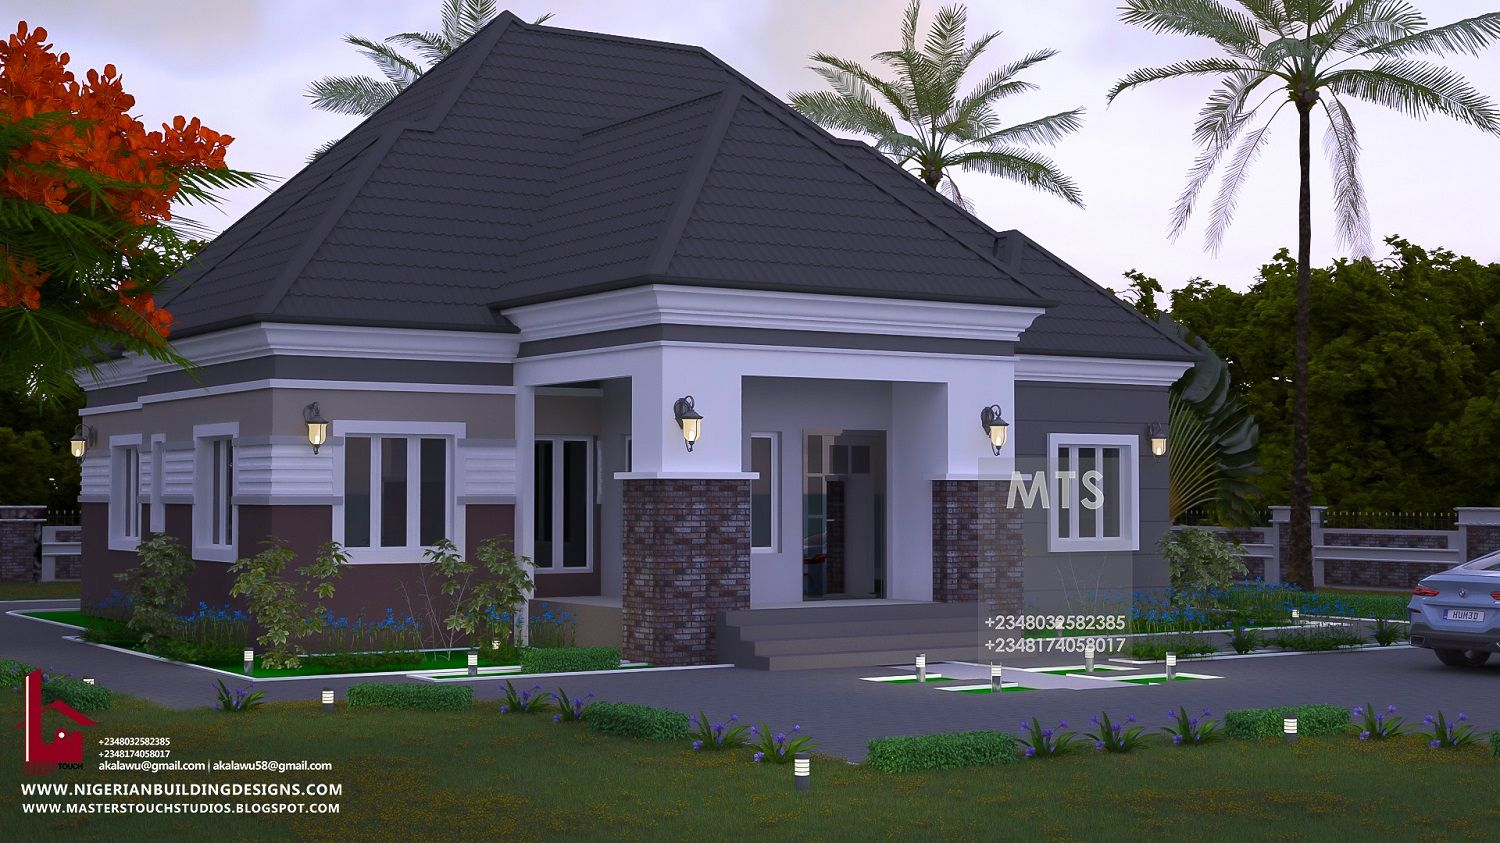 4 Bedroom Bungalow Rf 4022 Modern Bungalow House Plans Beautiful House Plans Bungalow House Design